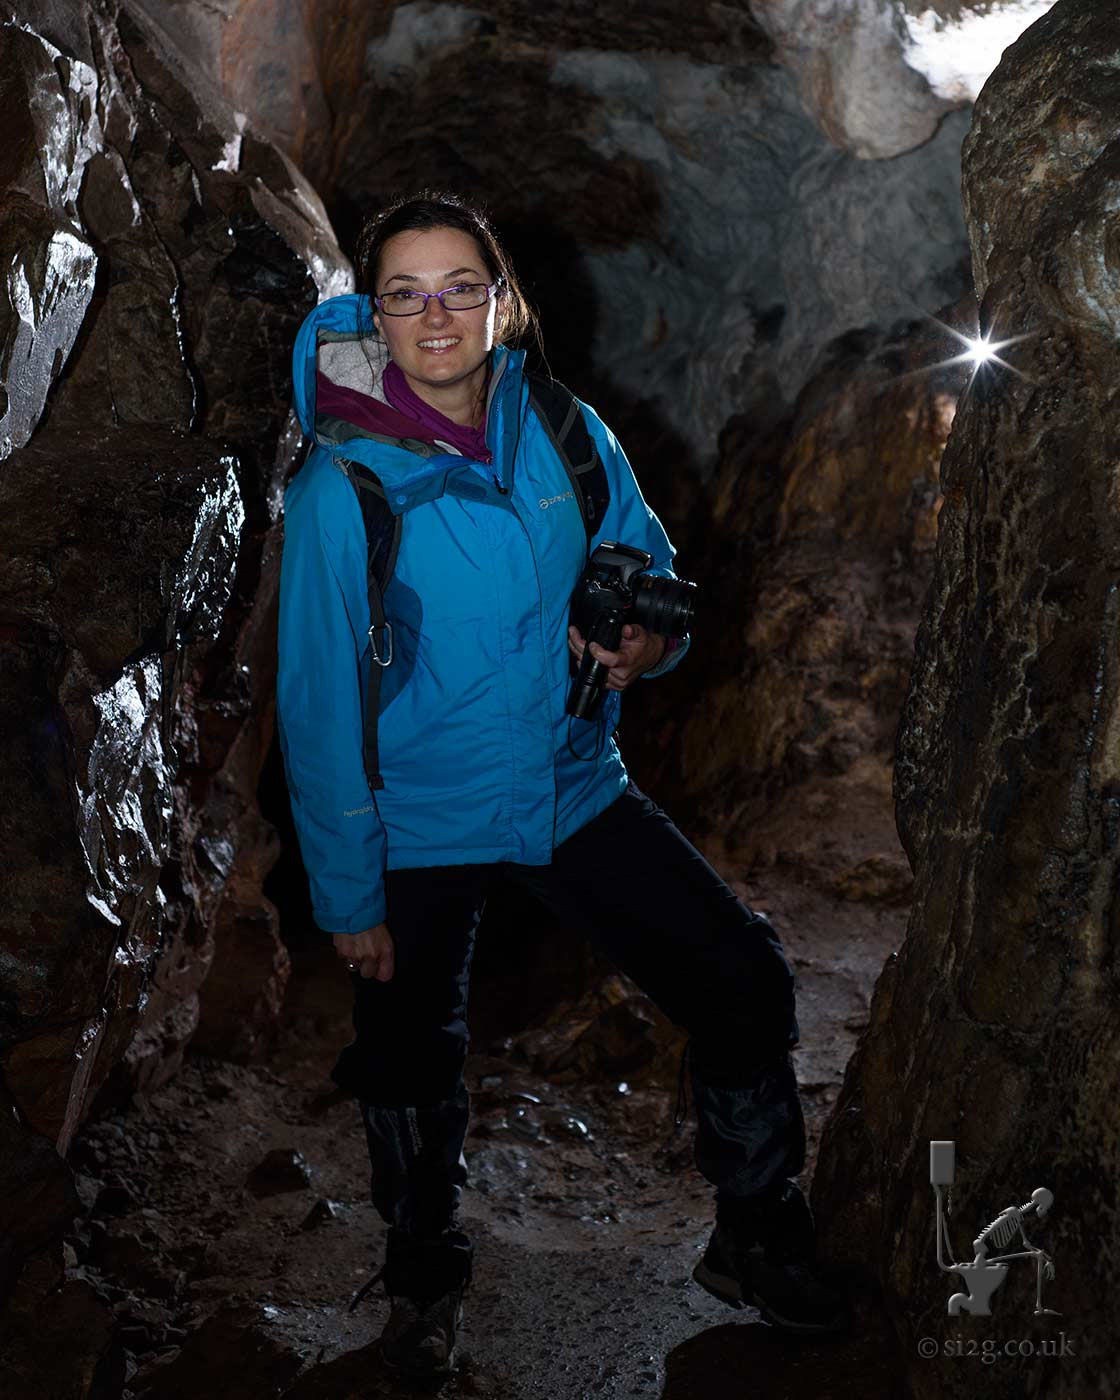 Going Underground - Daria exploring a network of caves underneath the Welsh countryside.